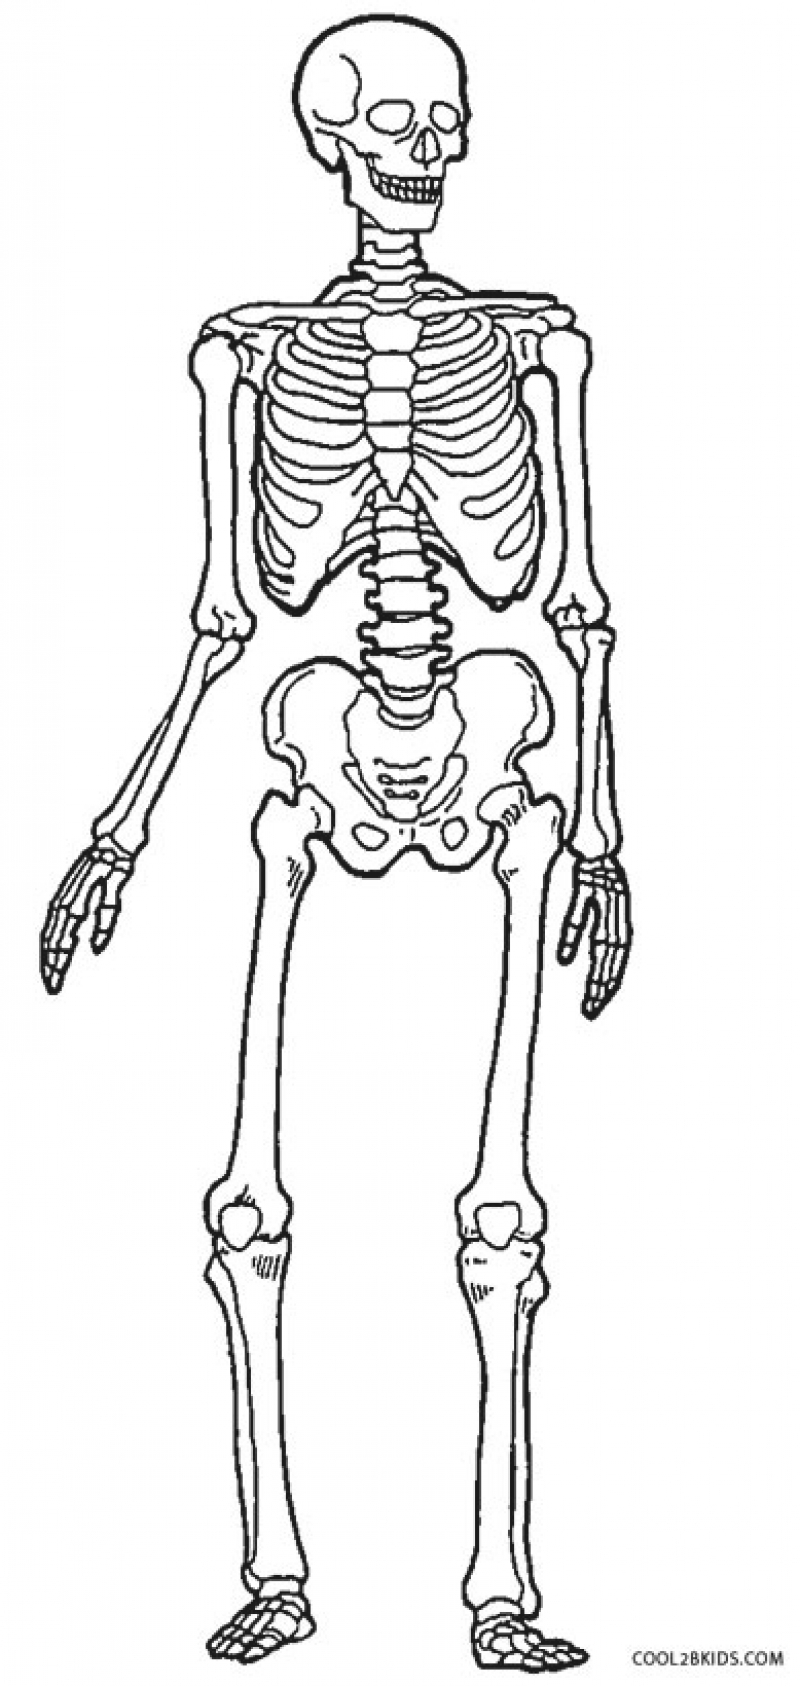 skeleton coloring pages free printable skeleton coloring pages for kids coloring pages skeleton 1 1